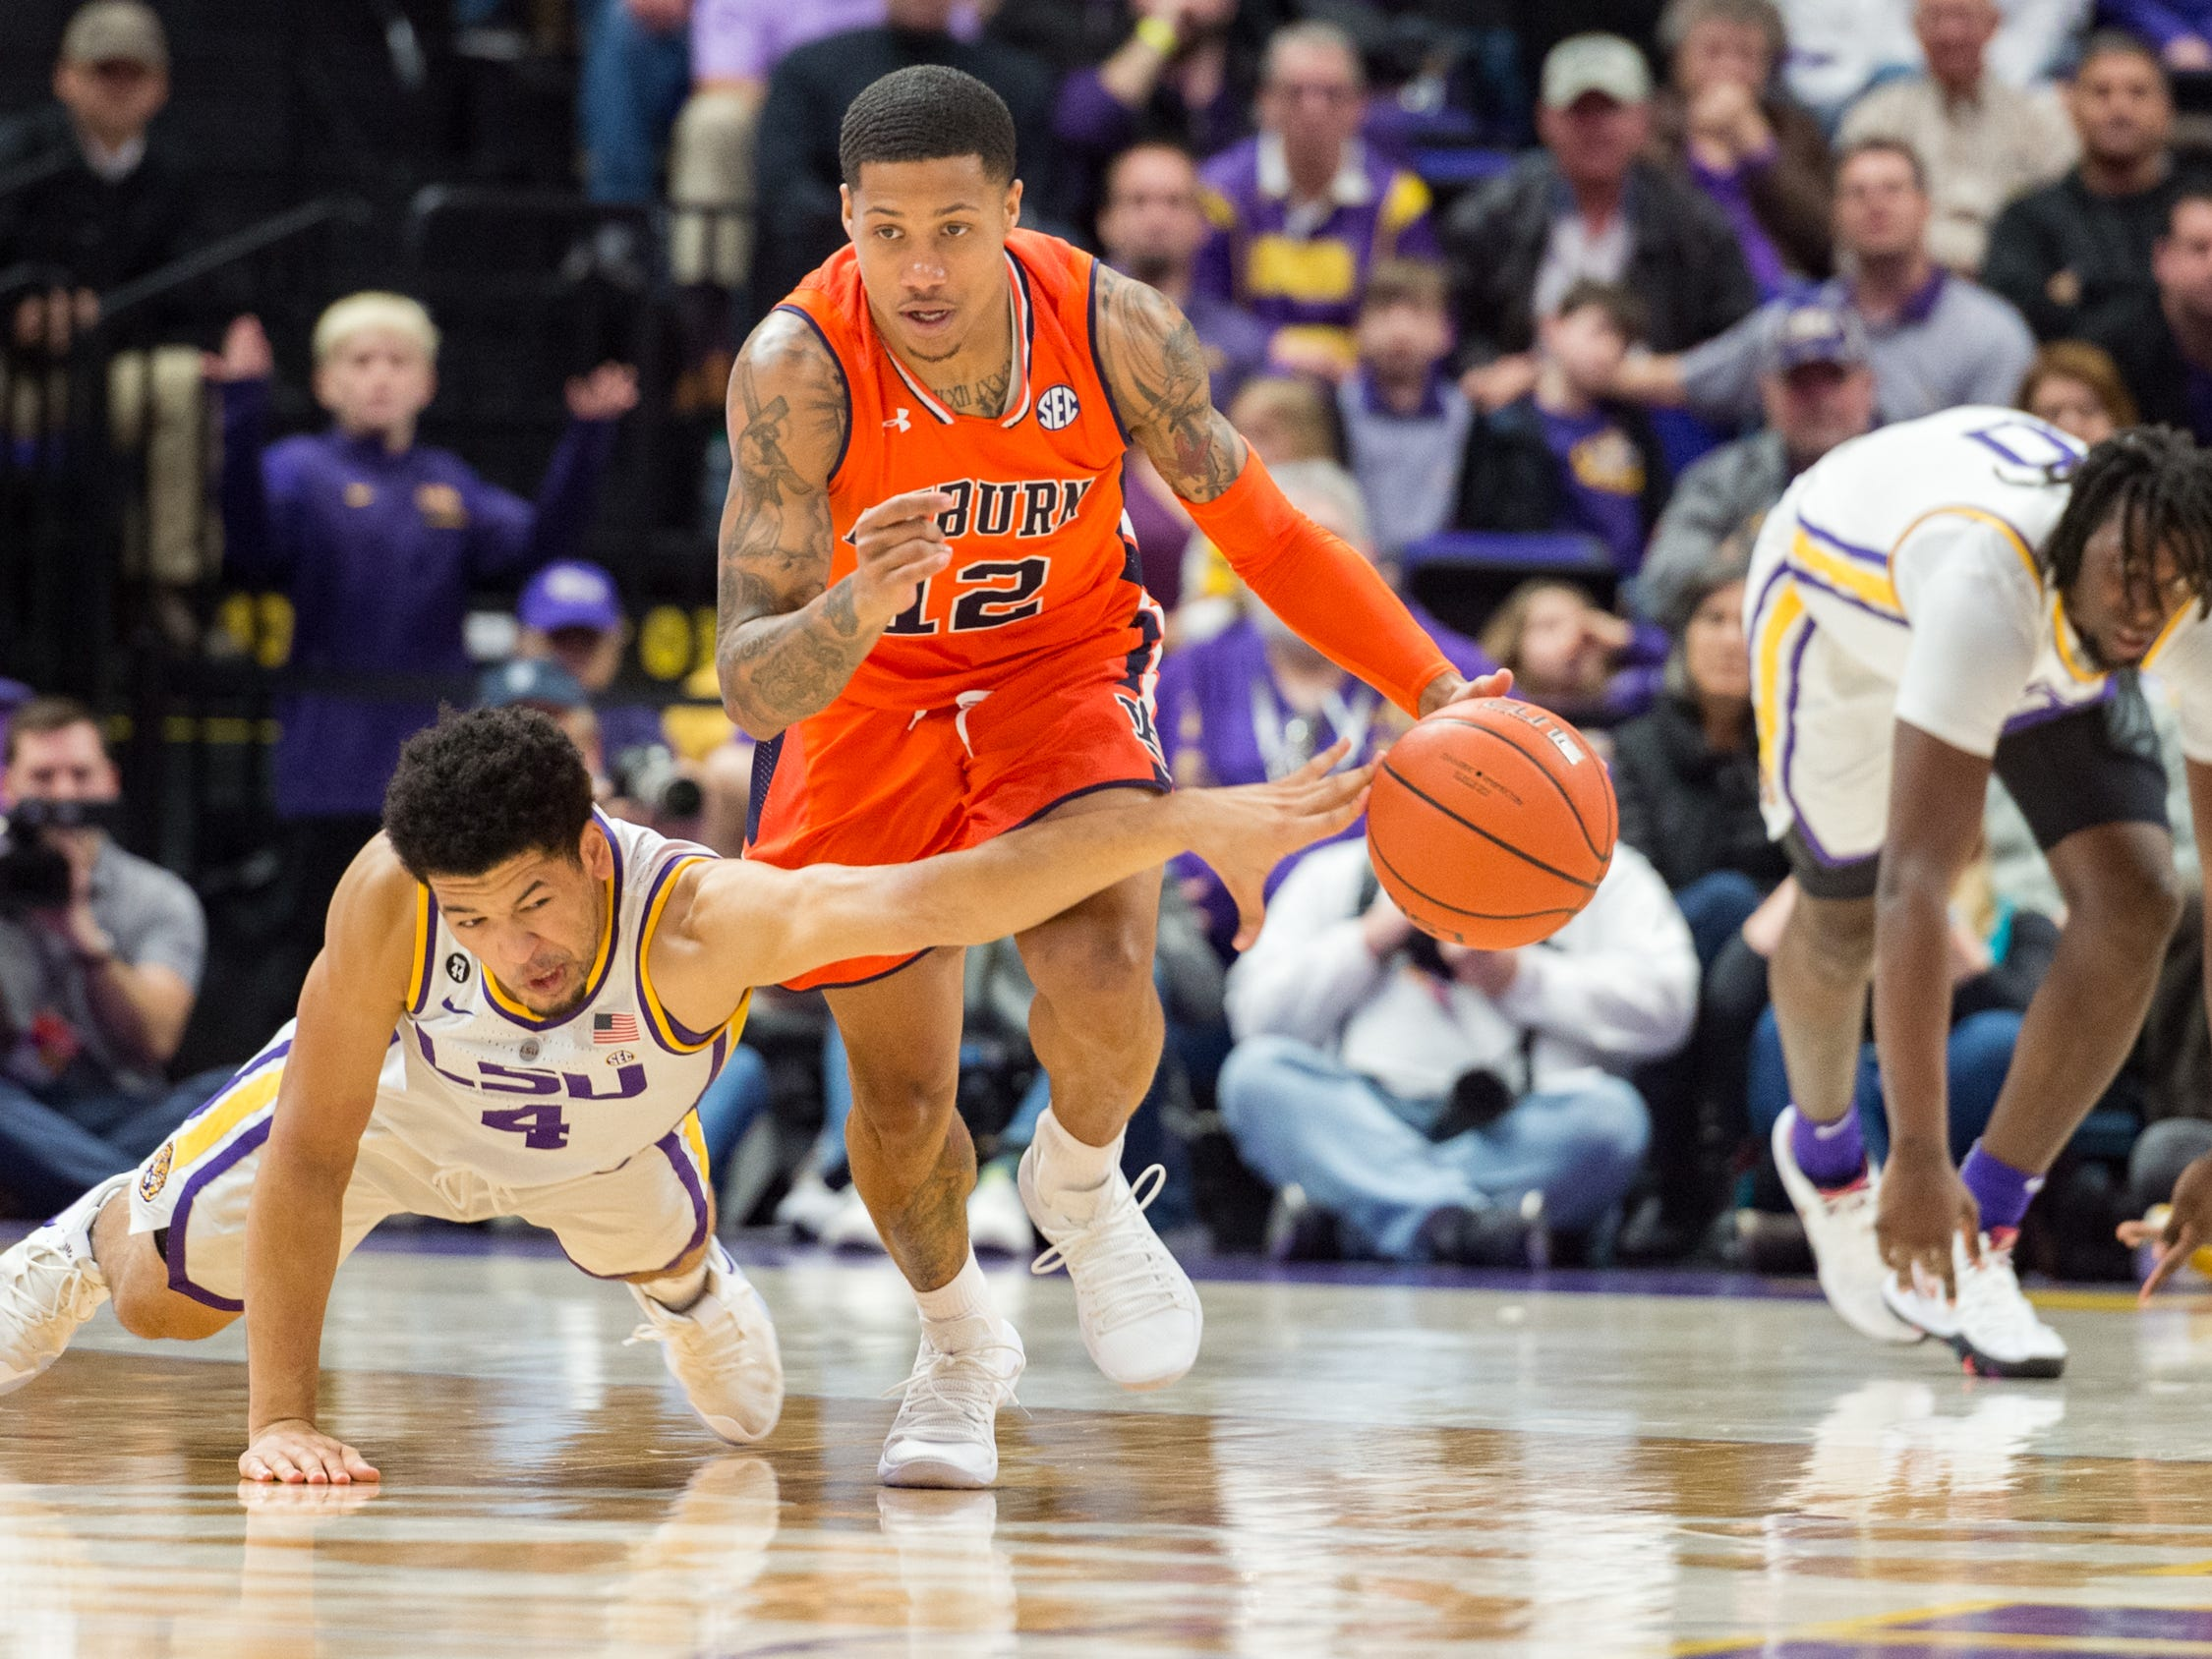 J'Von McCormick drives the ball down court as Skylar mays tries to make a steal as the LSU Tigers take down the Auburn Tigers 83-78. Saturday, Feb. 9, 2019.